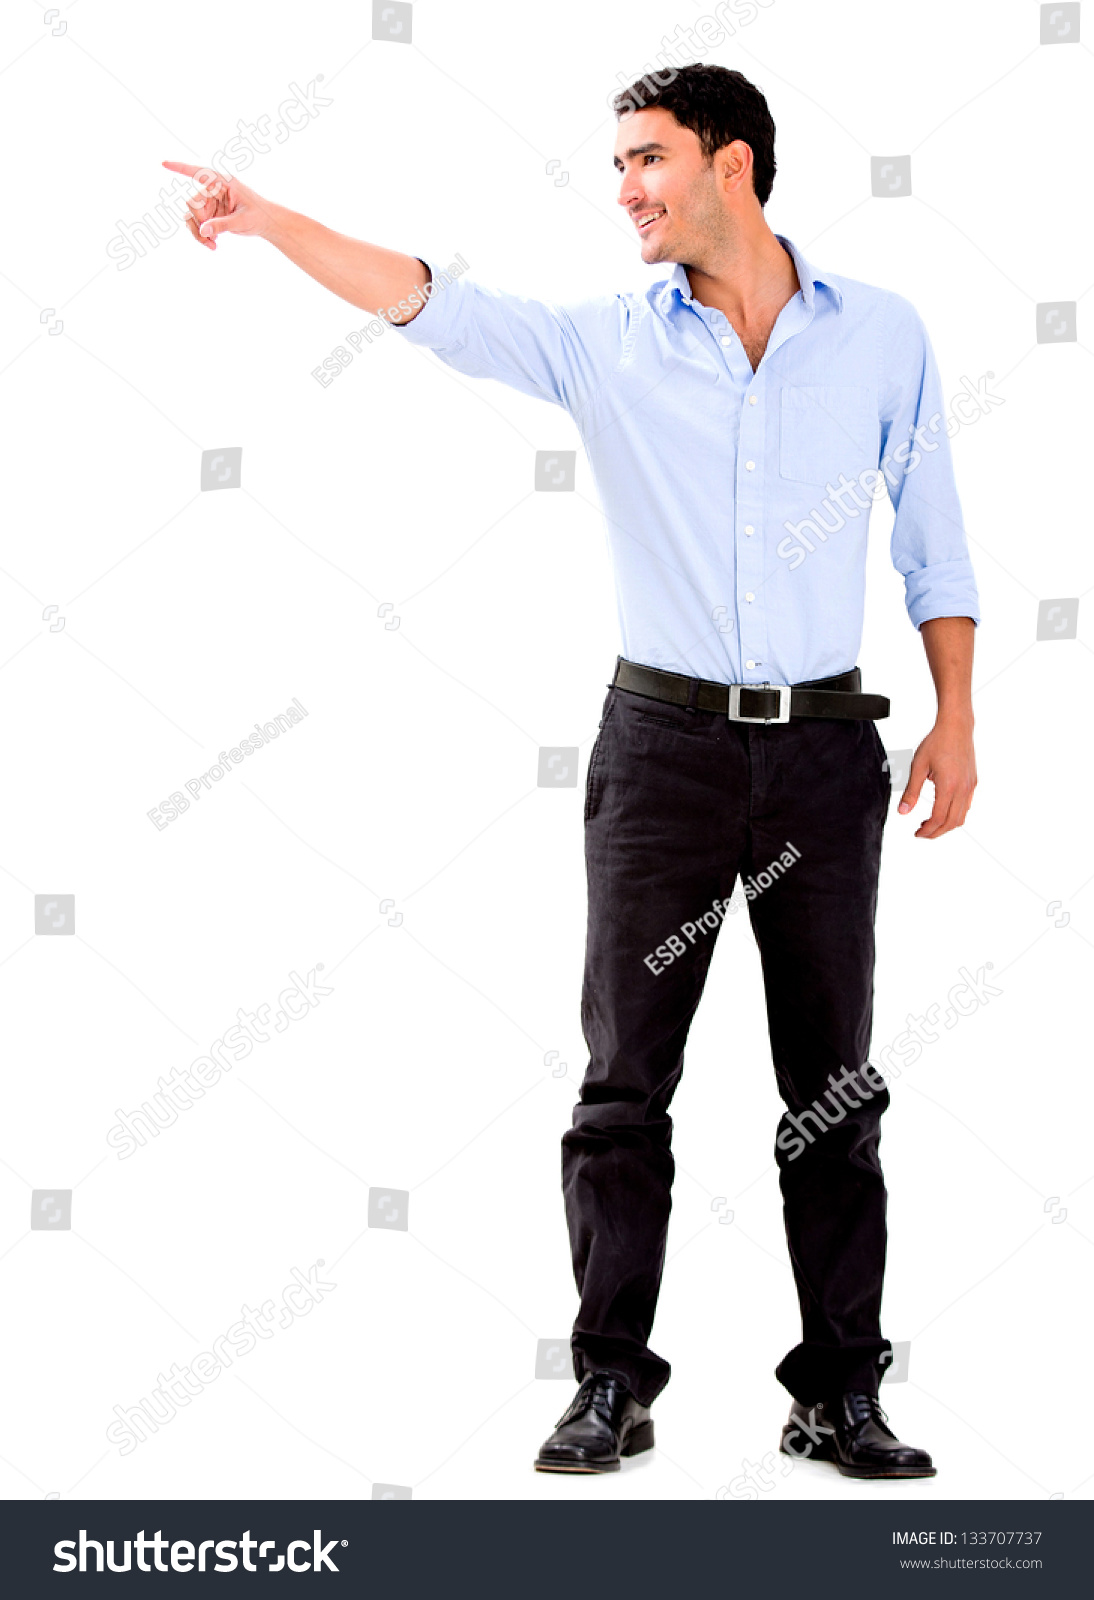 stock-photo-business-man-pointing-away-i